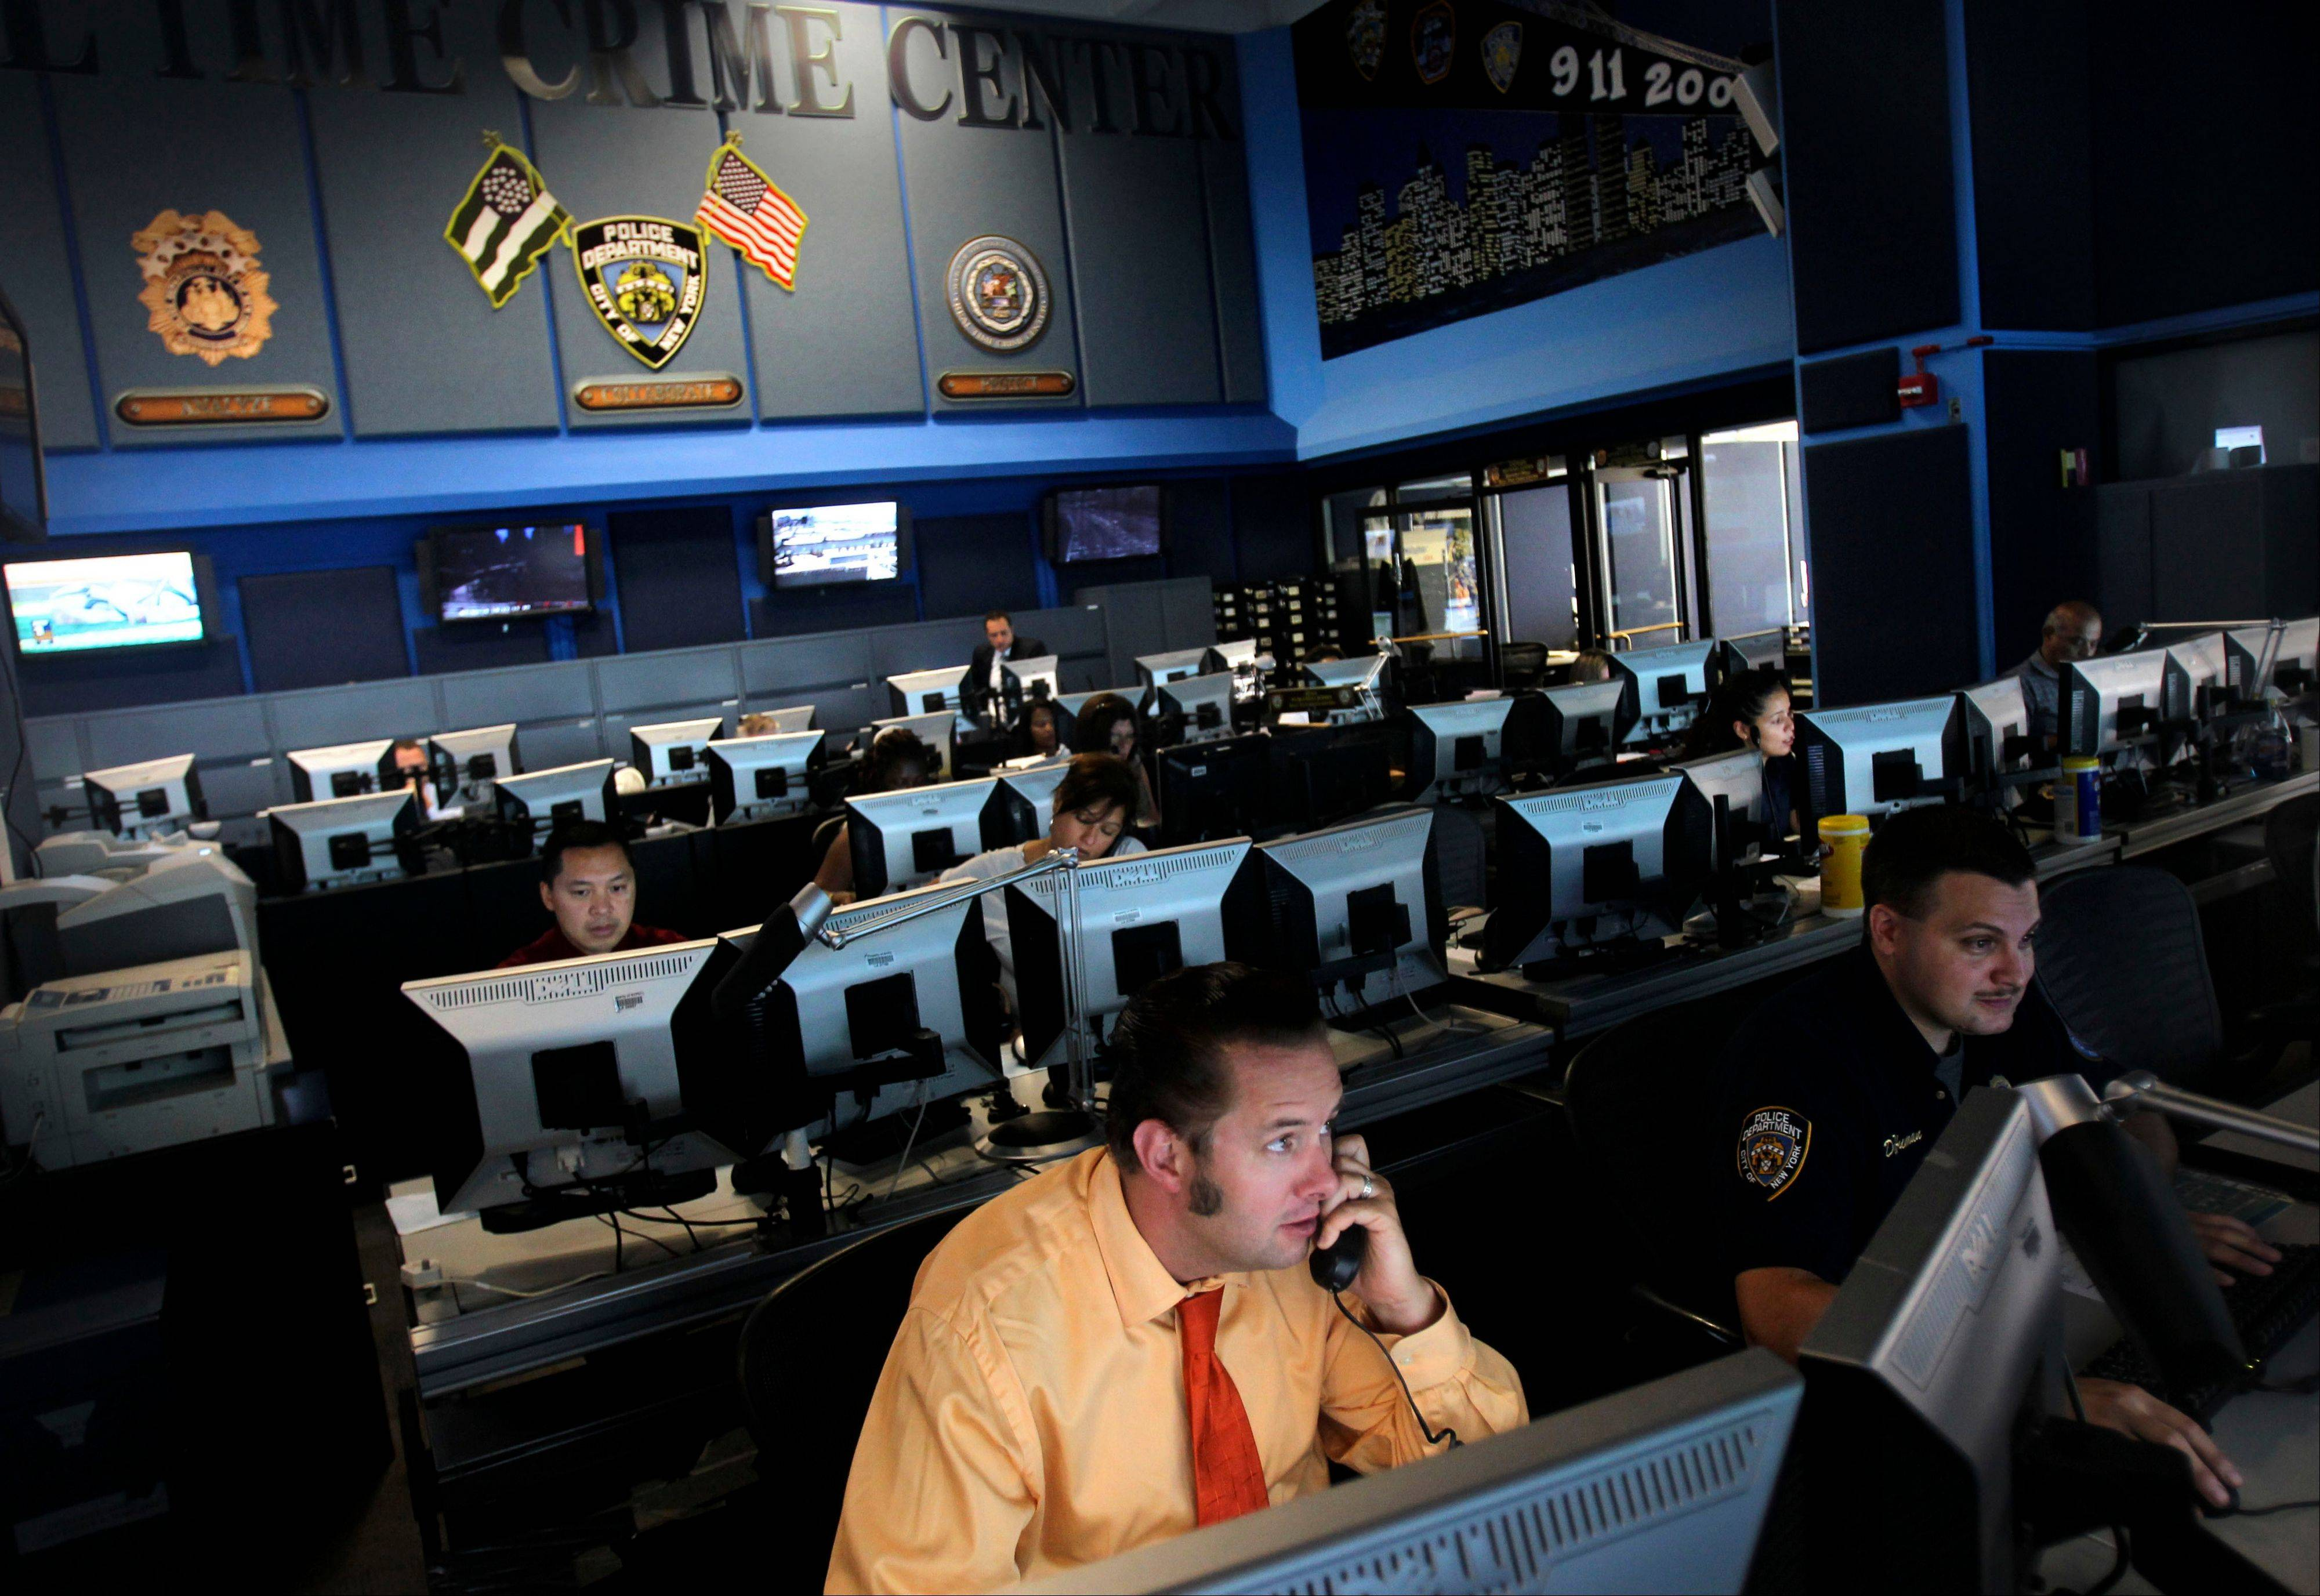 Employees work inside the Real Time Crime Center at police headquarters in New York. A decade after the Sept. 11 terror attacks, New York City emergency agencies are better trained and better equipped to communicate in a disaster, but first responders in cities around the country say the progress is not good enough. A national network is needed where police and fire departments can talk to each other and share video and other critical data, they say.